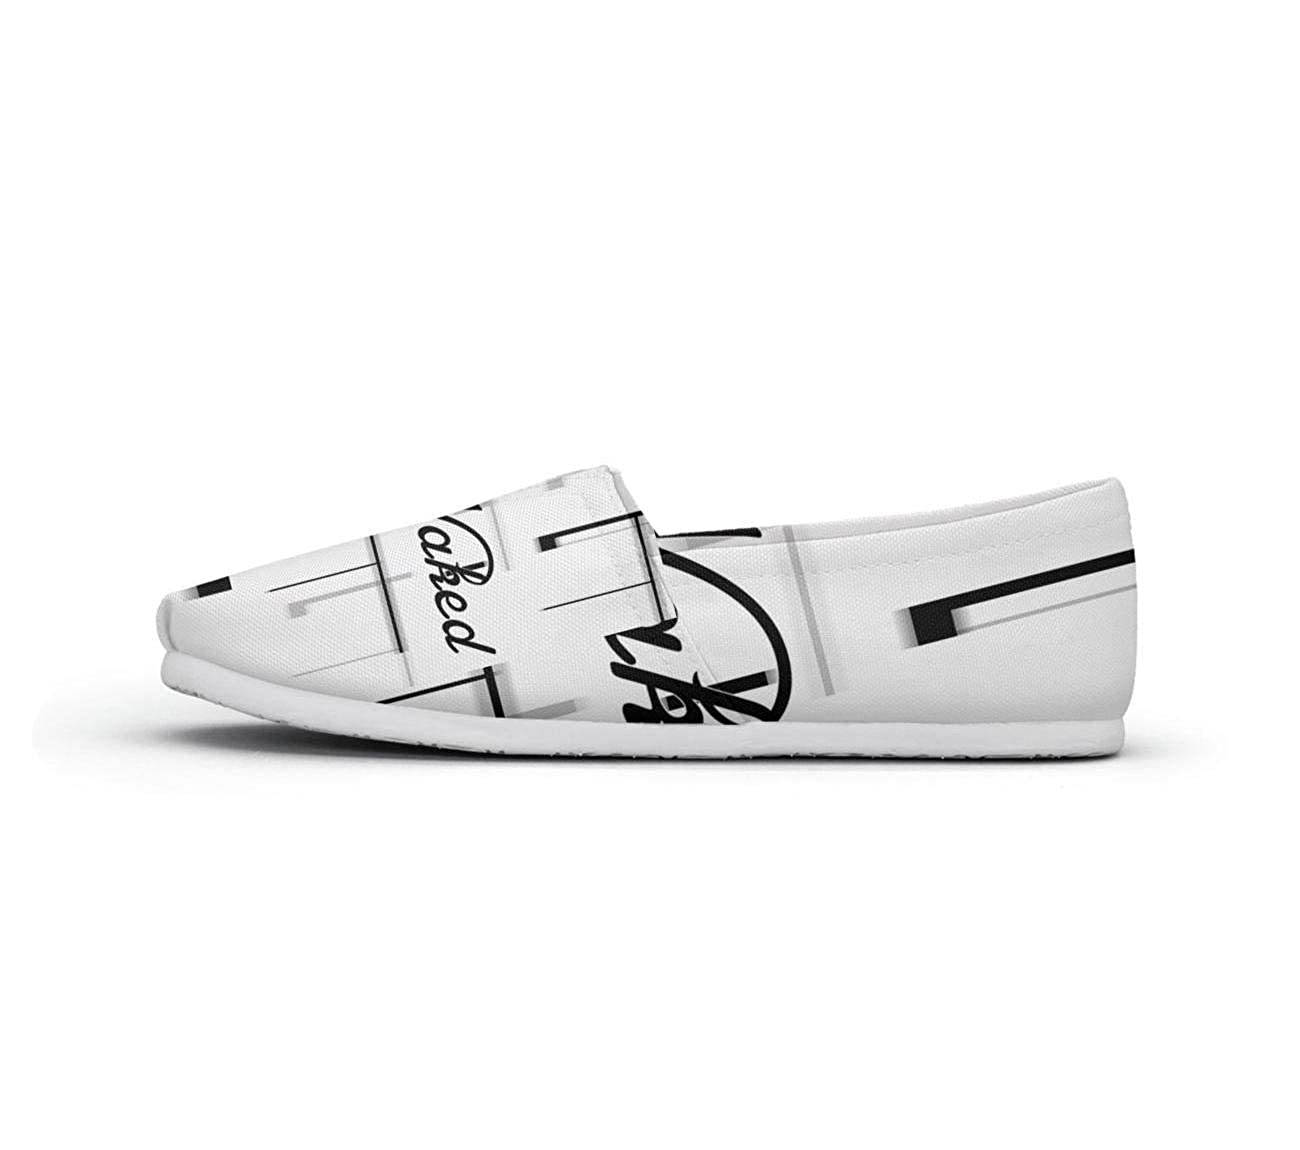 nkfbx Black and White get Naked Casual Slip-On Trainers for Women Jogging